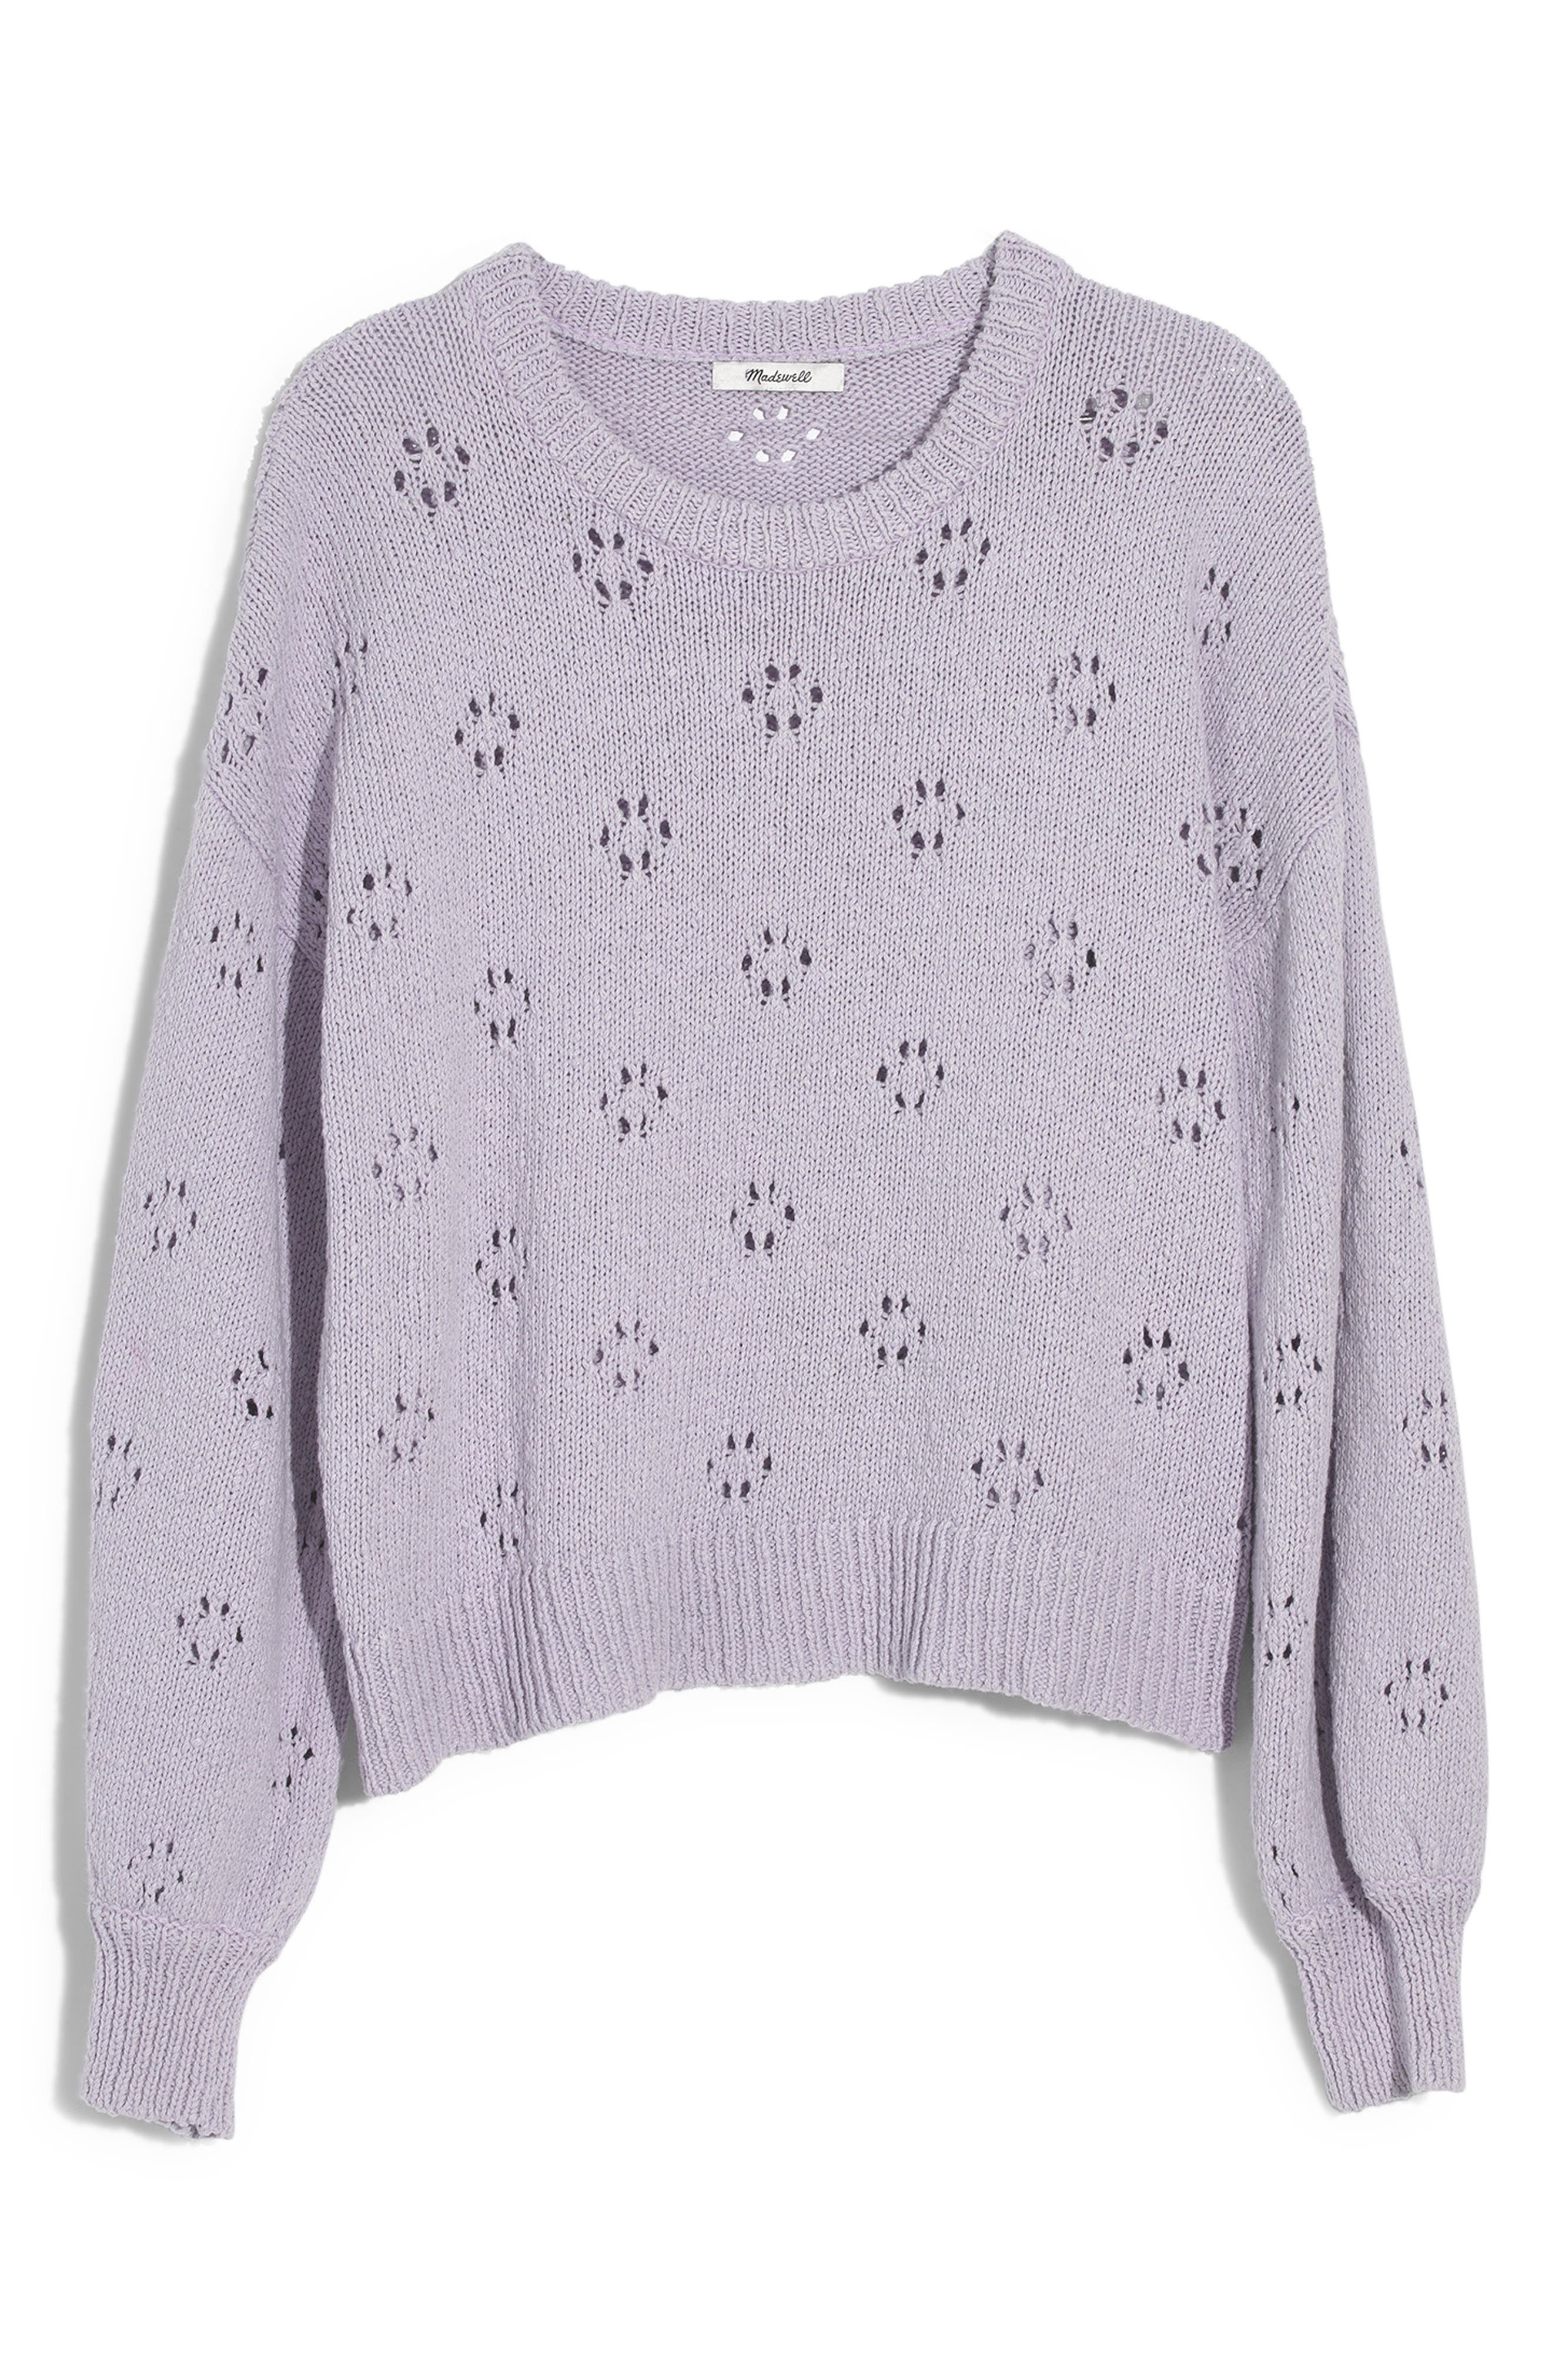 MADEWELL, Floral Pointelle Pullover Sweater, Alternate thumbnail 6, color, SUNDRENCHED LILAC